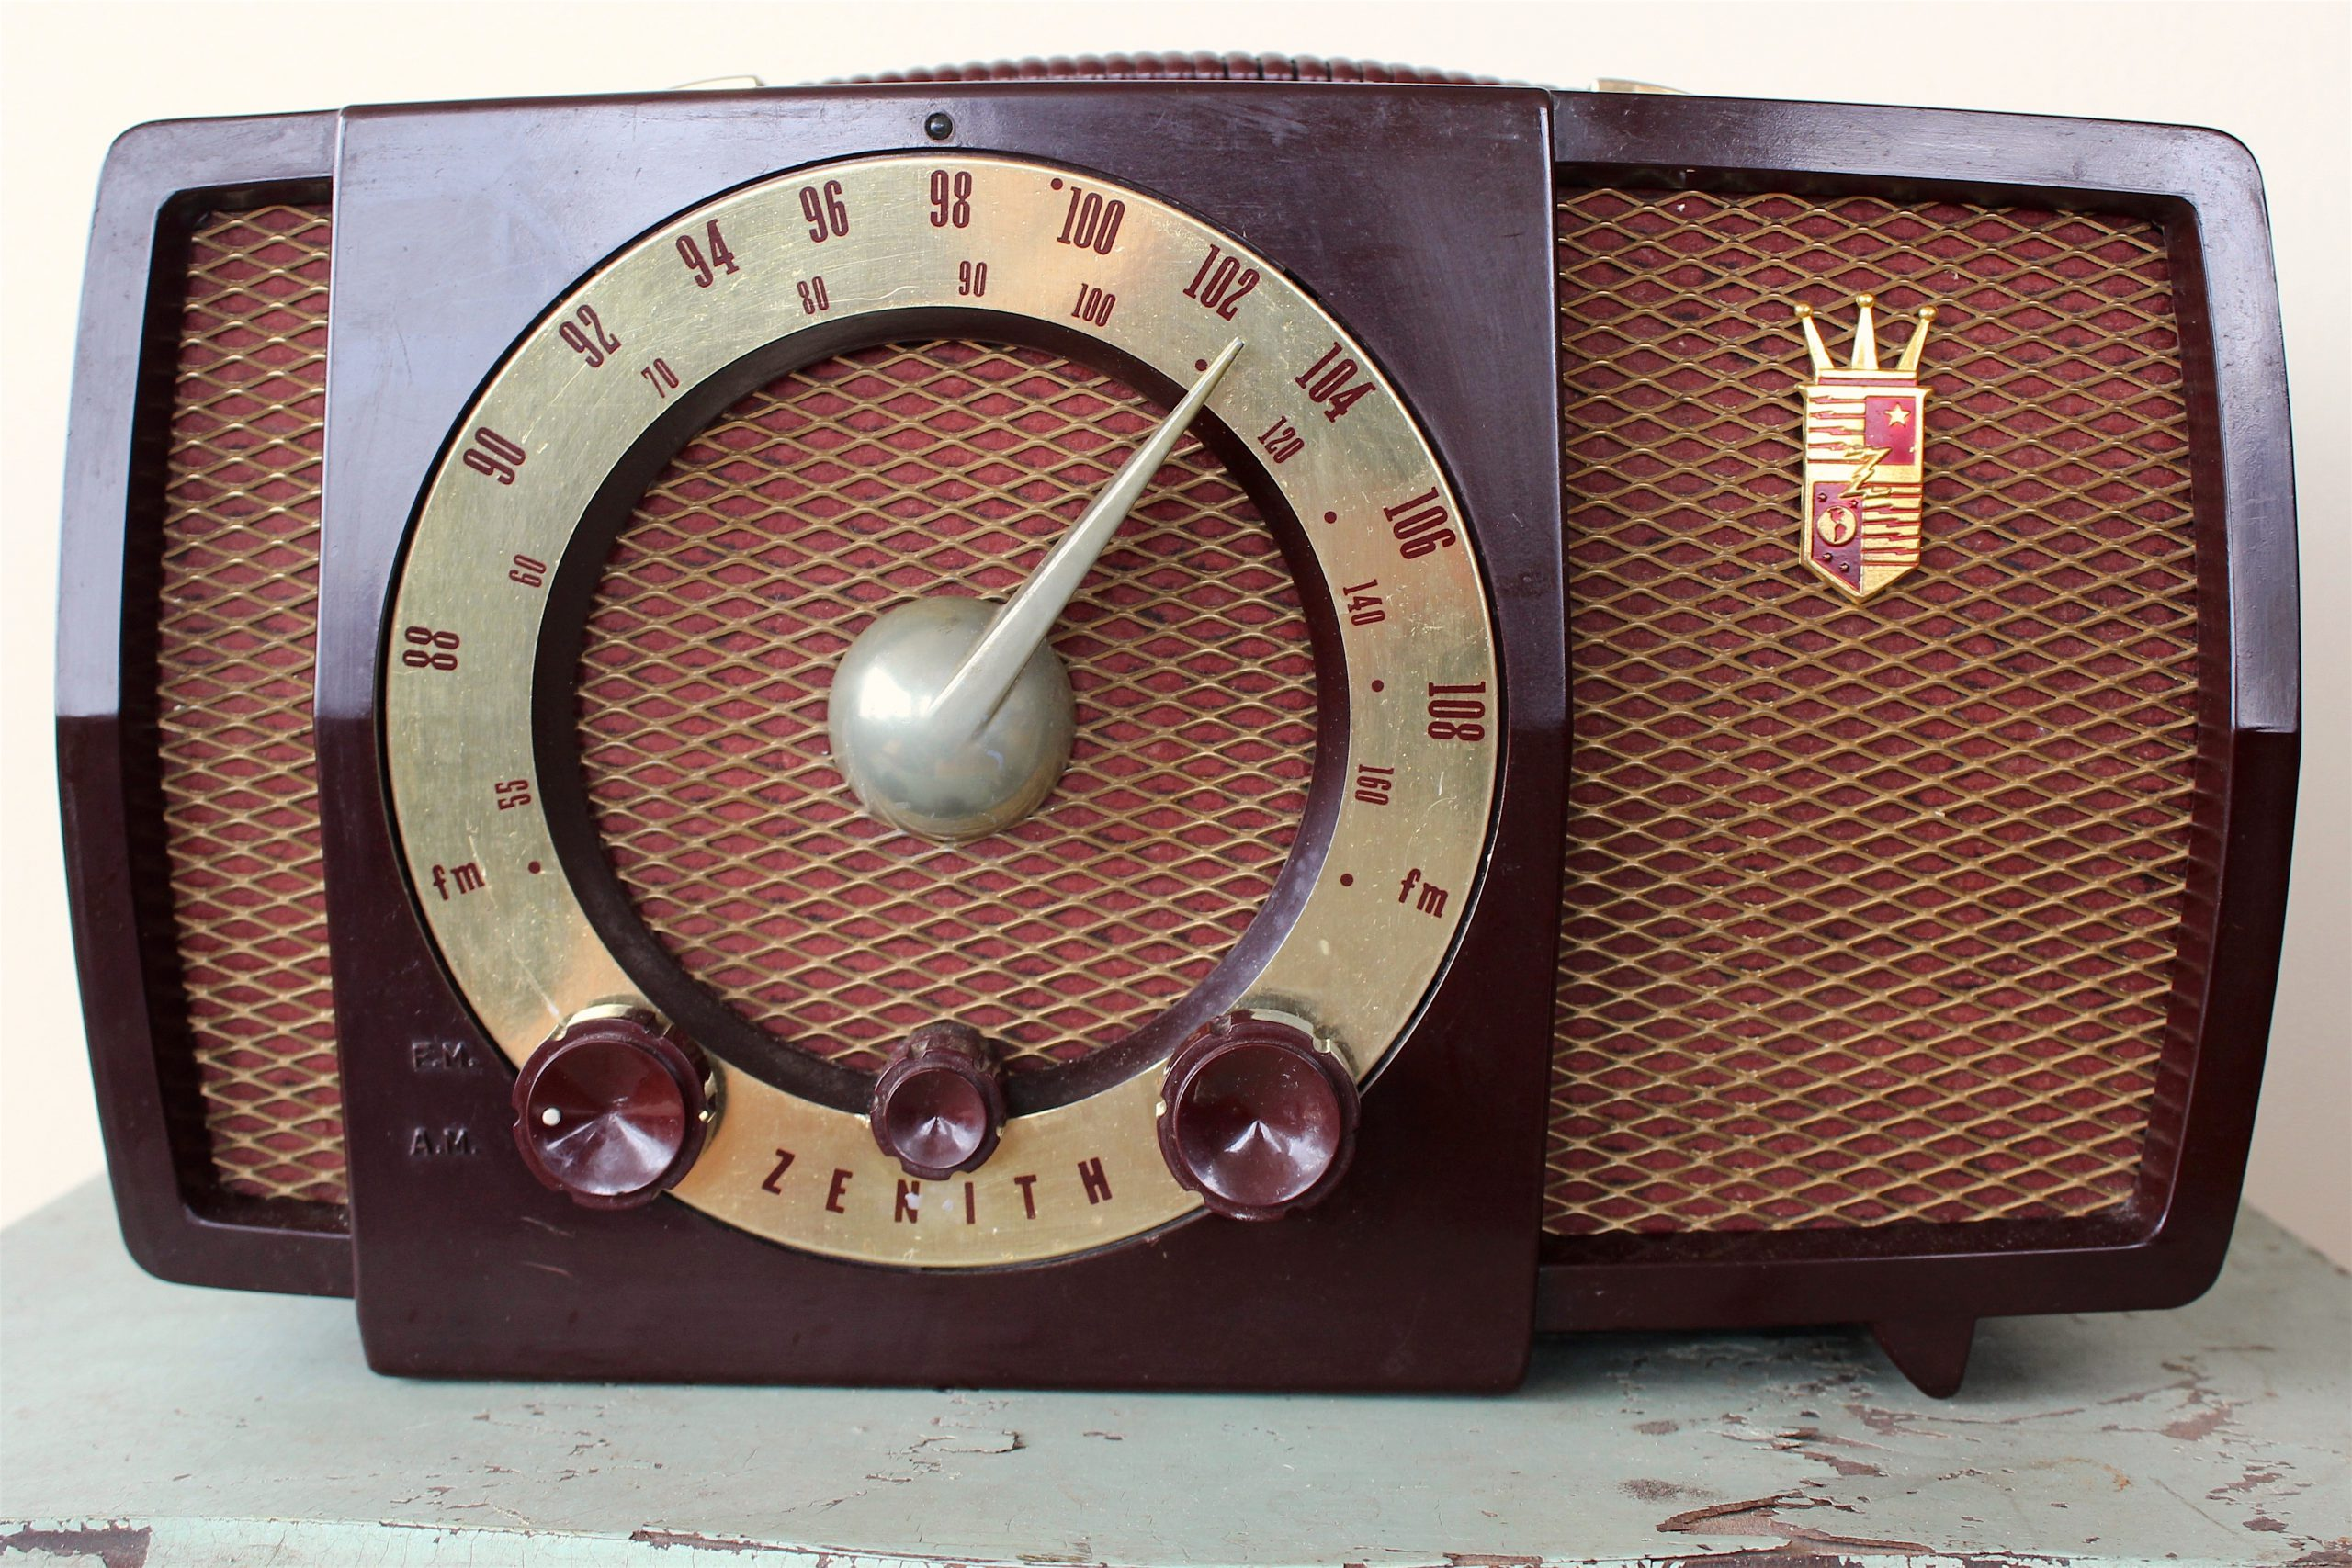 Zenith Radio Corporation, est. 1918